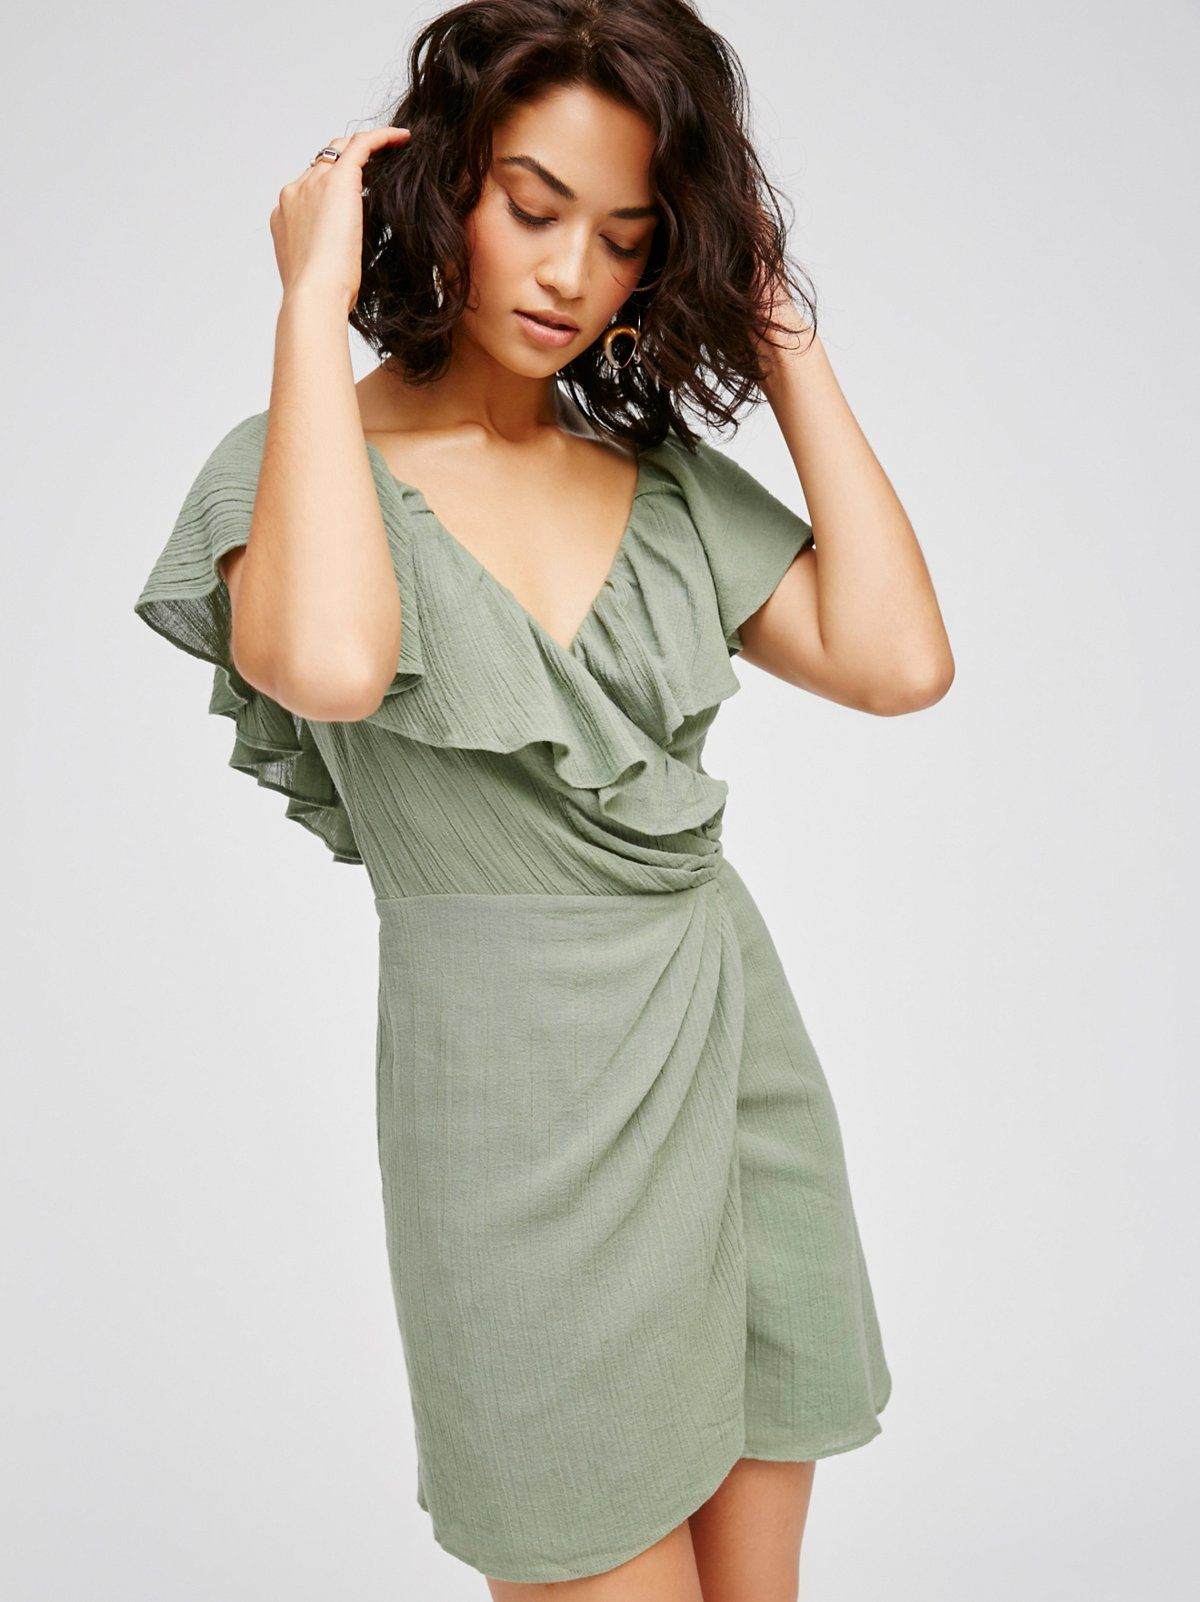 97985ab55b ... Free People. Bali Dreamin' Mini Dress | Made from our sheer and gauzy  Endless Summer fabric, this cotton mini features pretty ruffle details  cascading ...